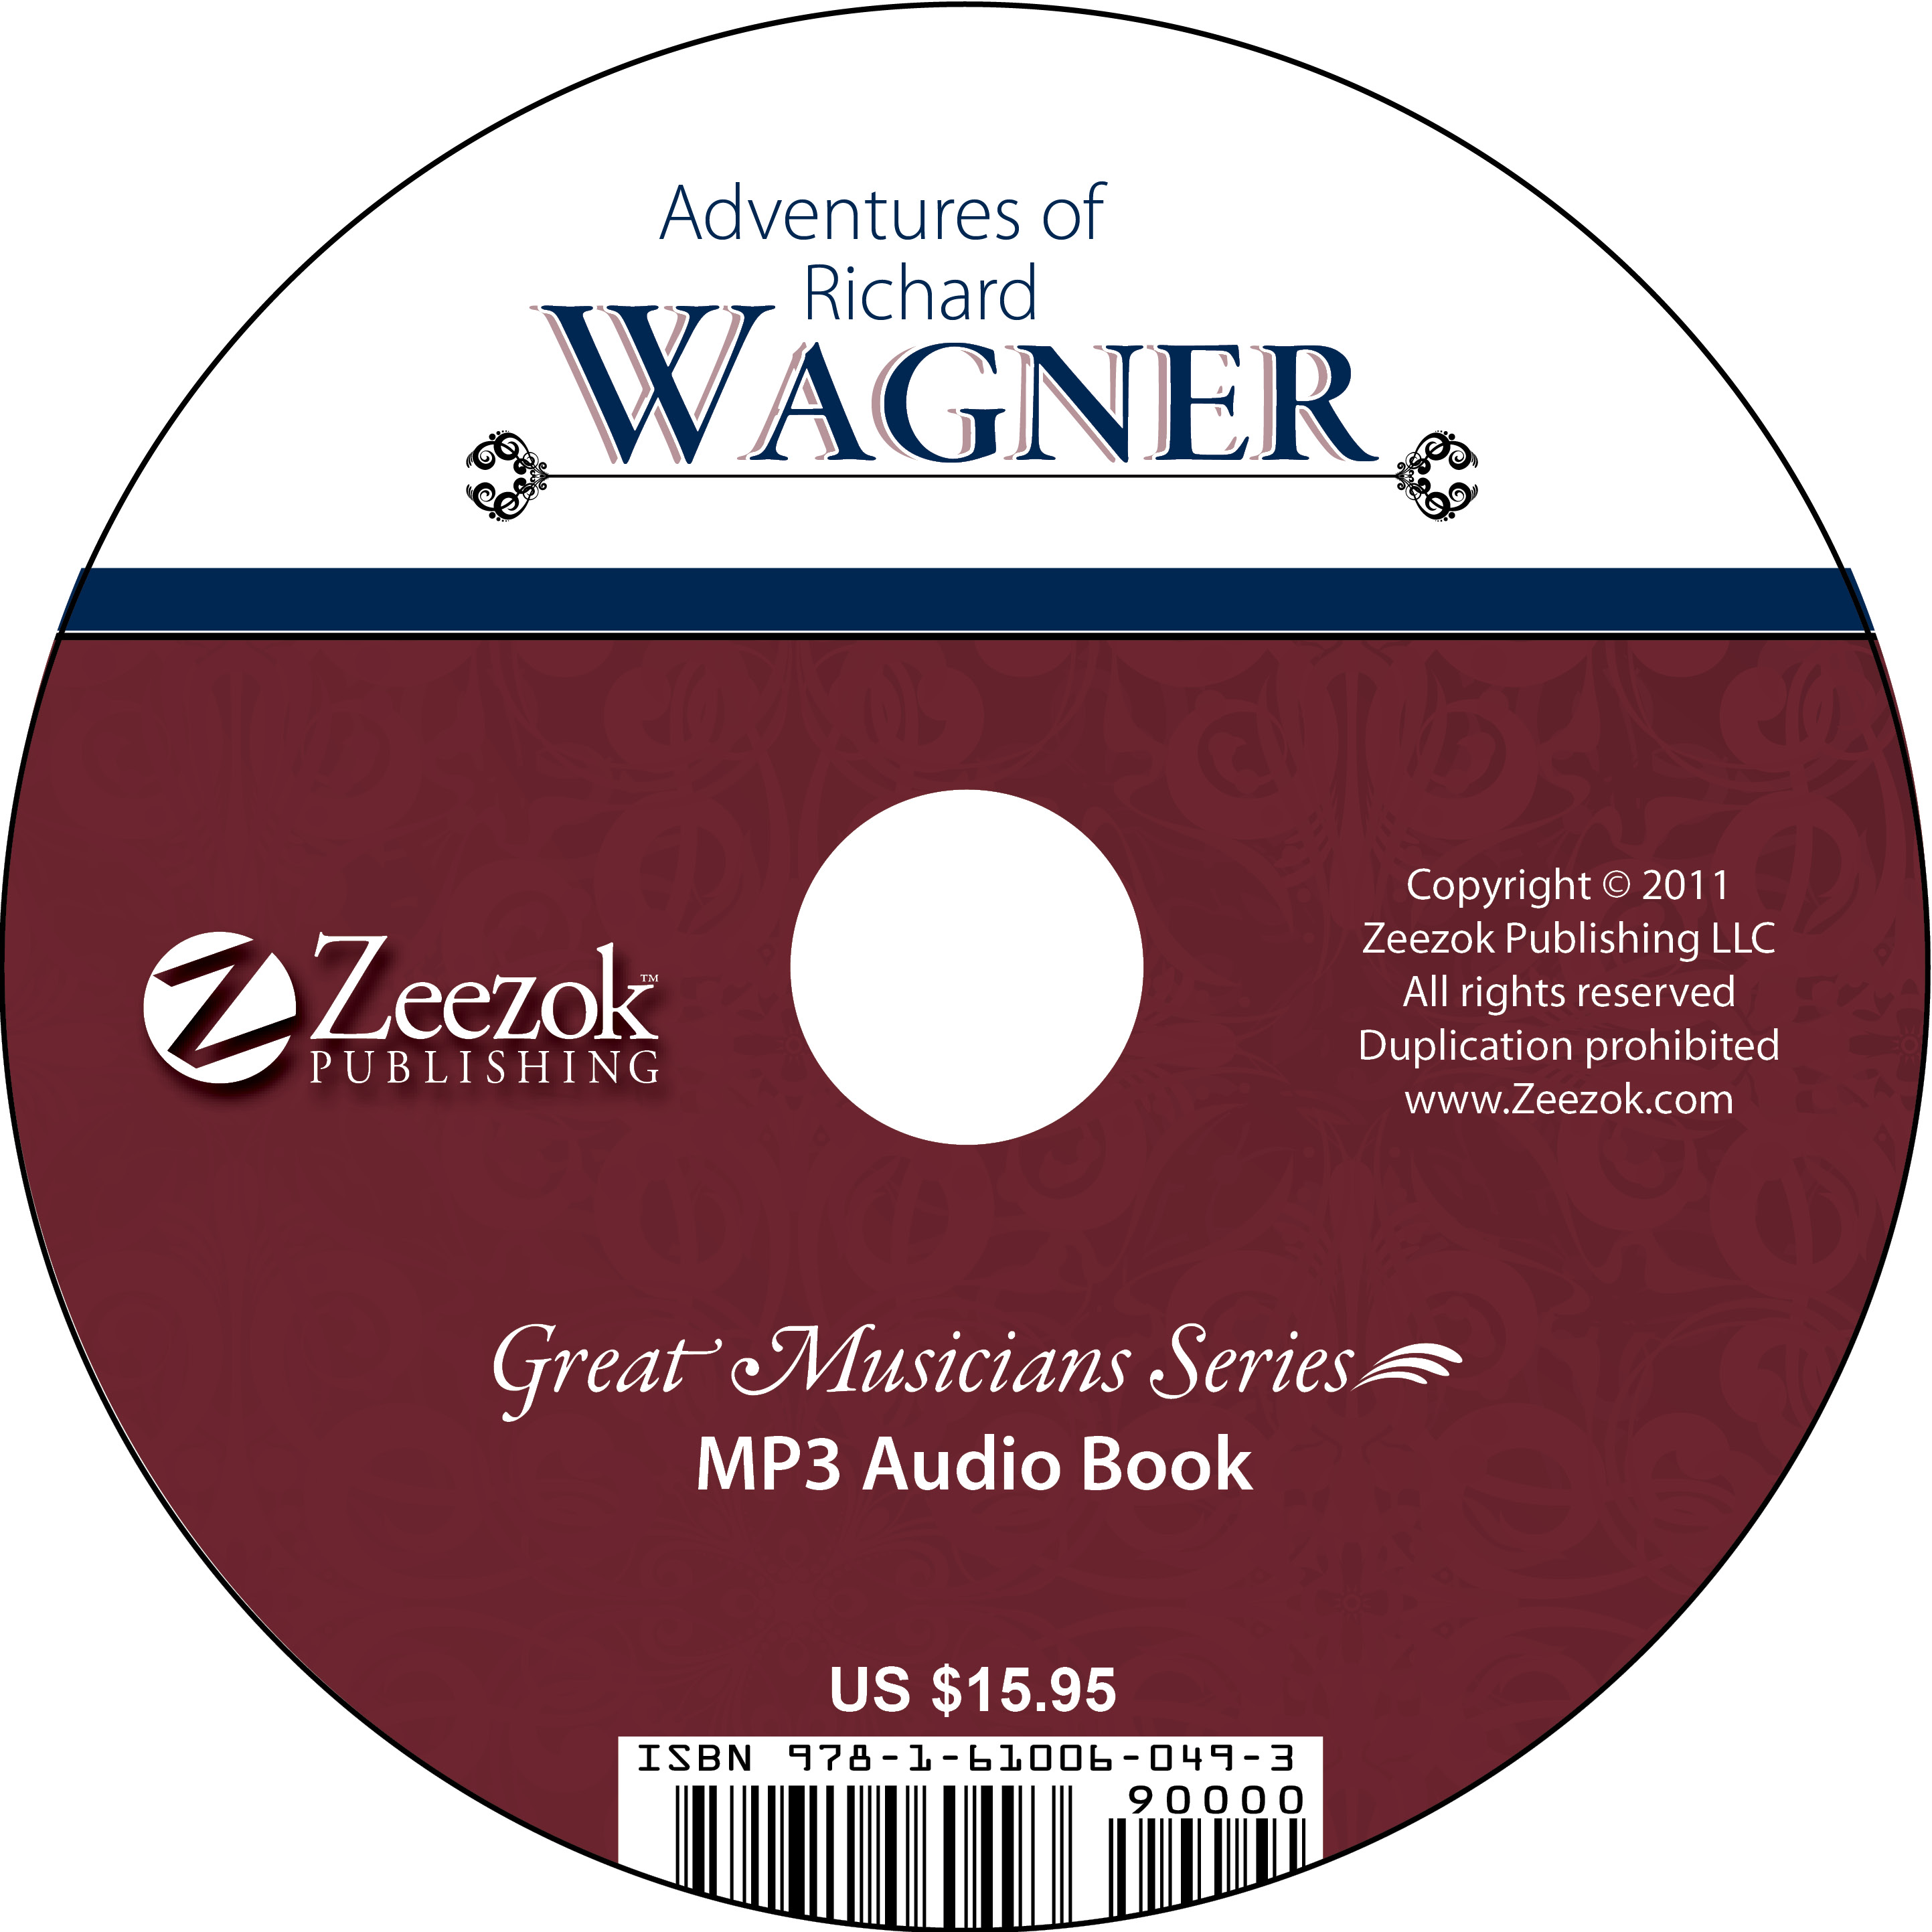 Adventures of Richard Wagner Audio Book on CD (MP3 format) - photo#12